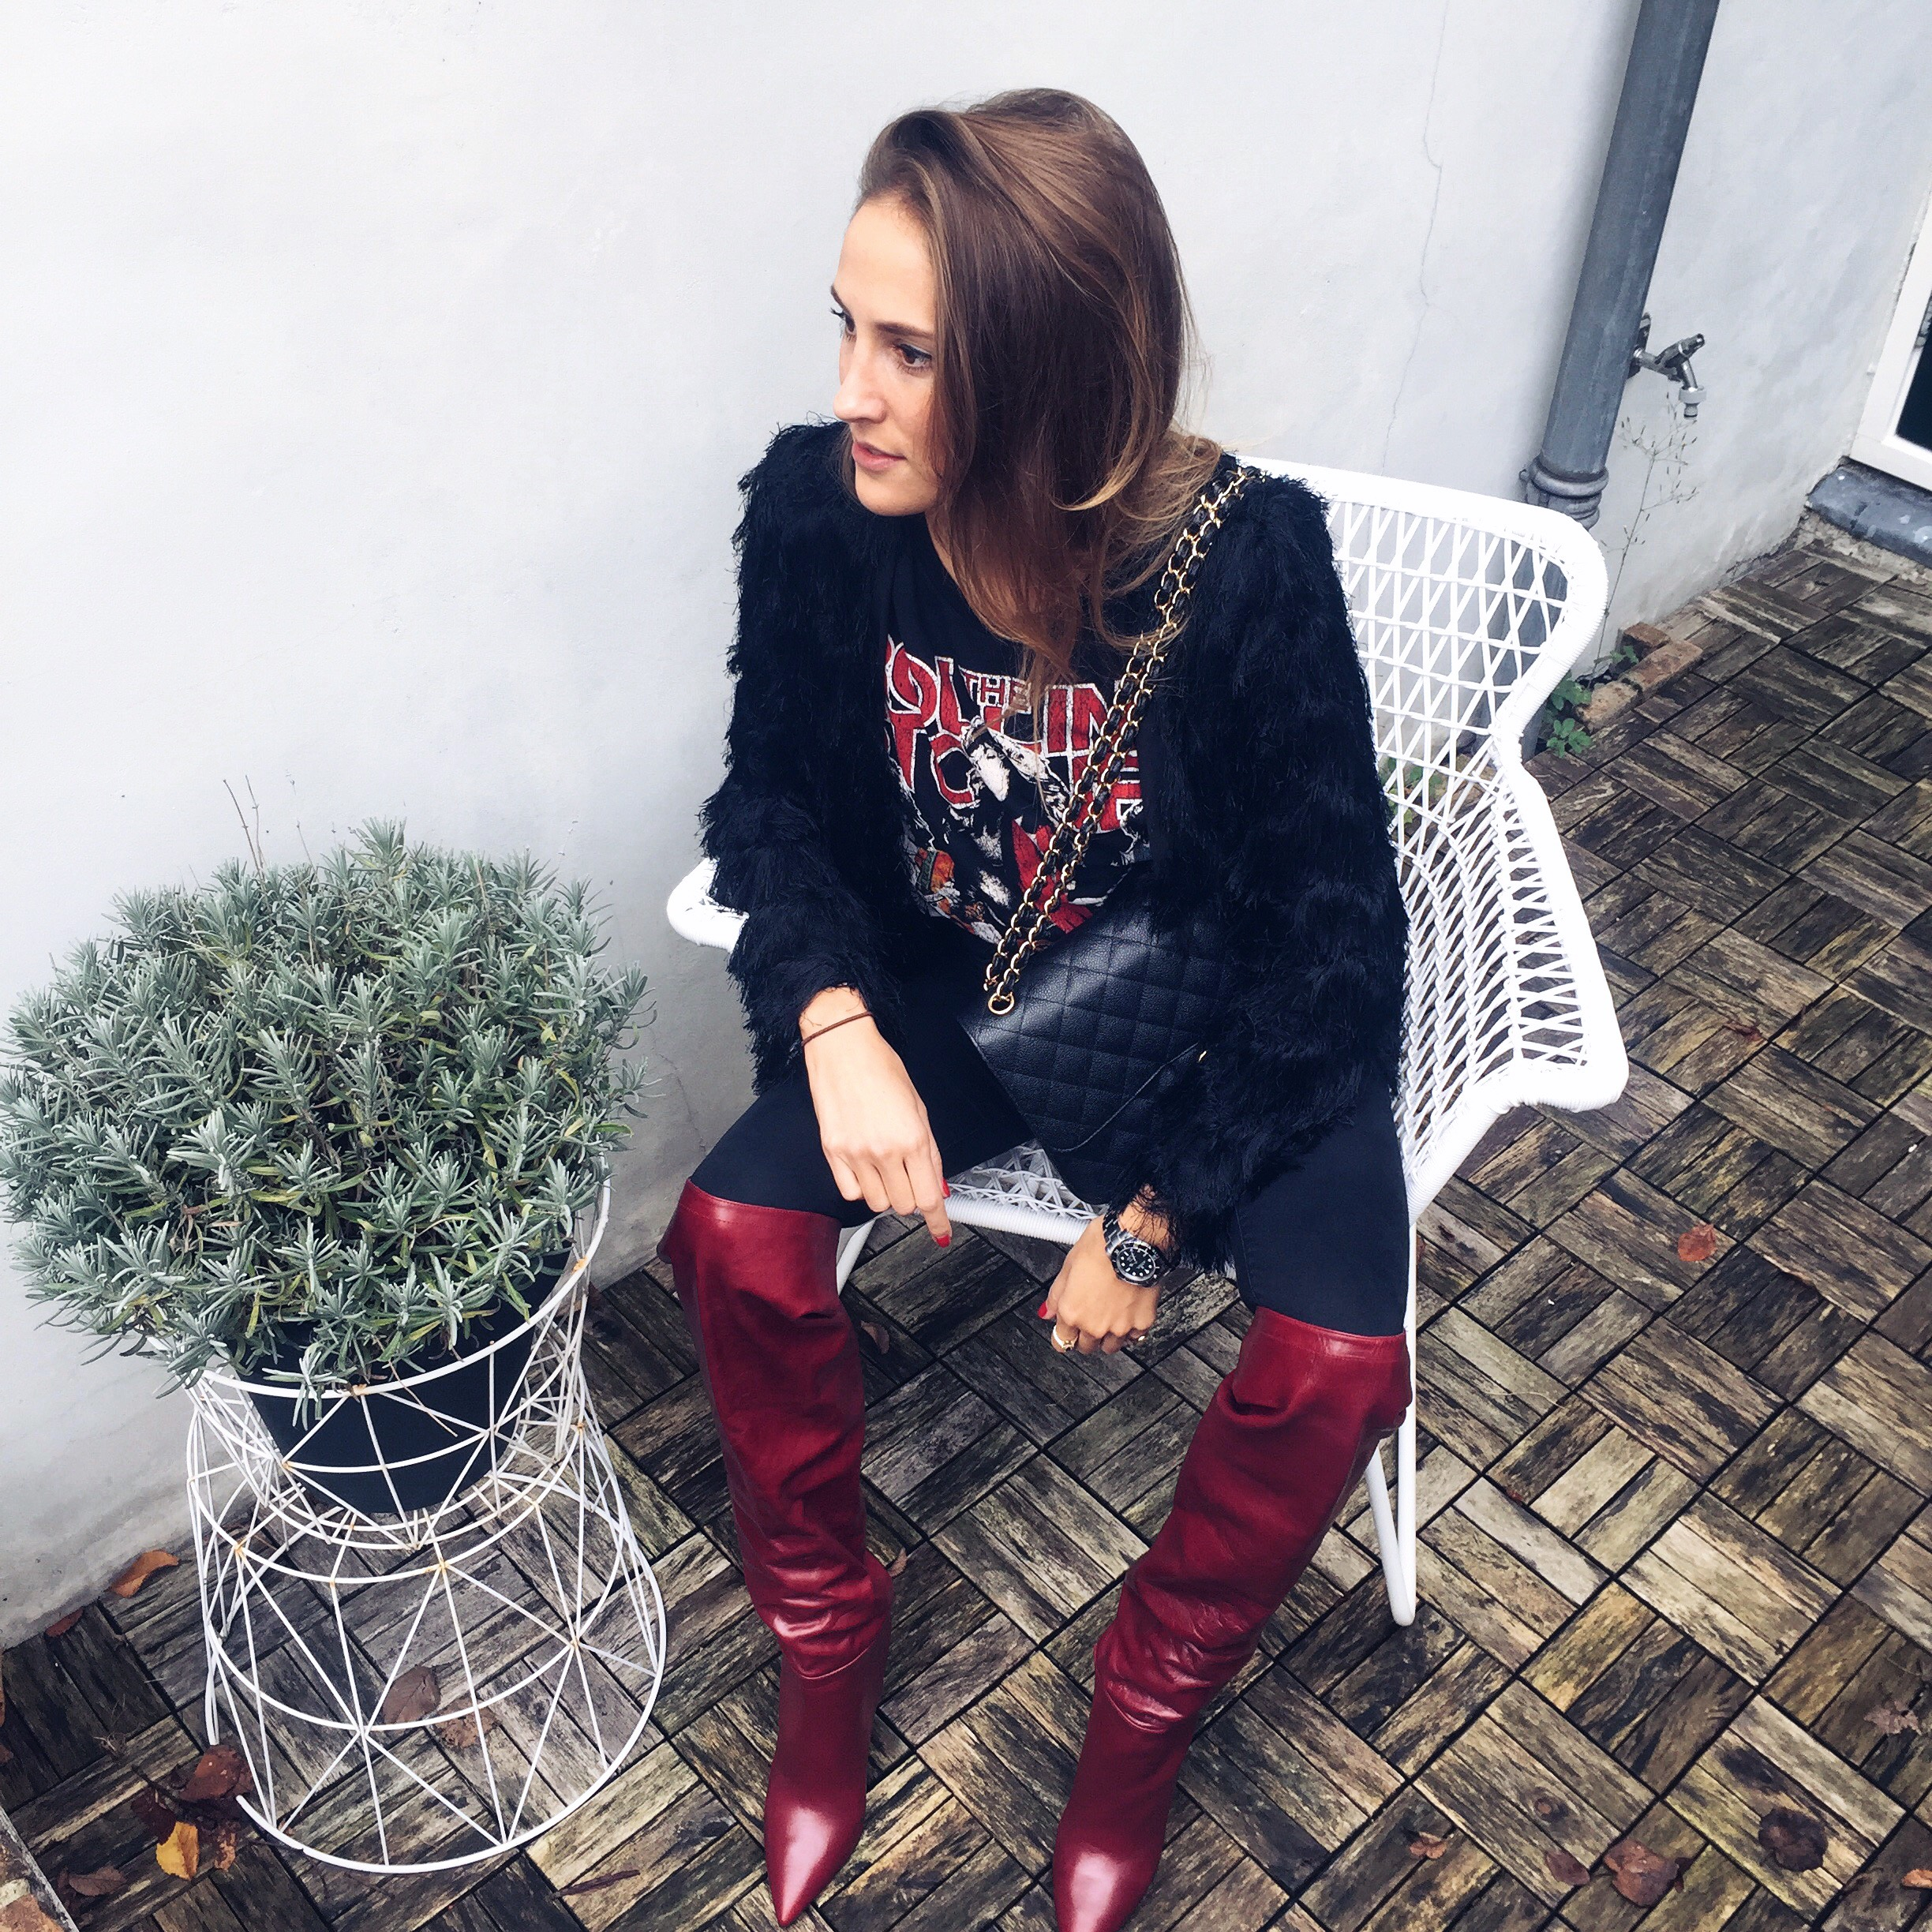 linda_tsetis_worlds_affair_ootd_zara_red_boots